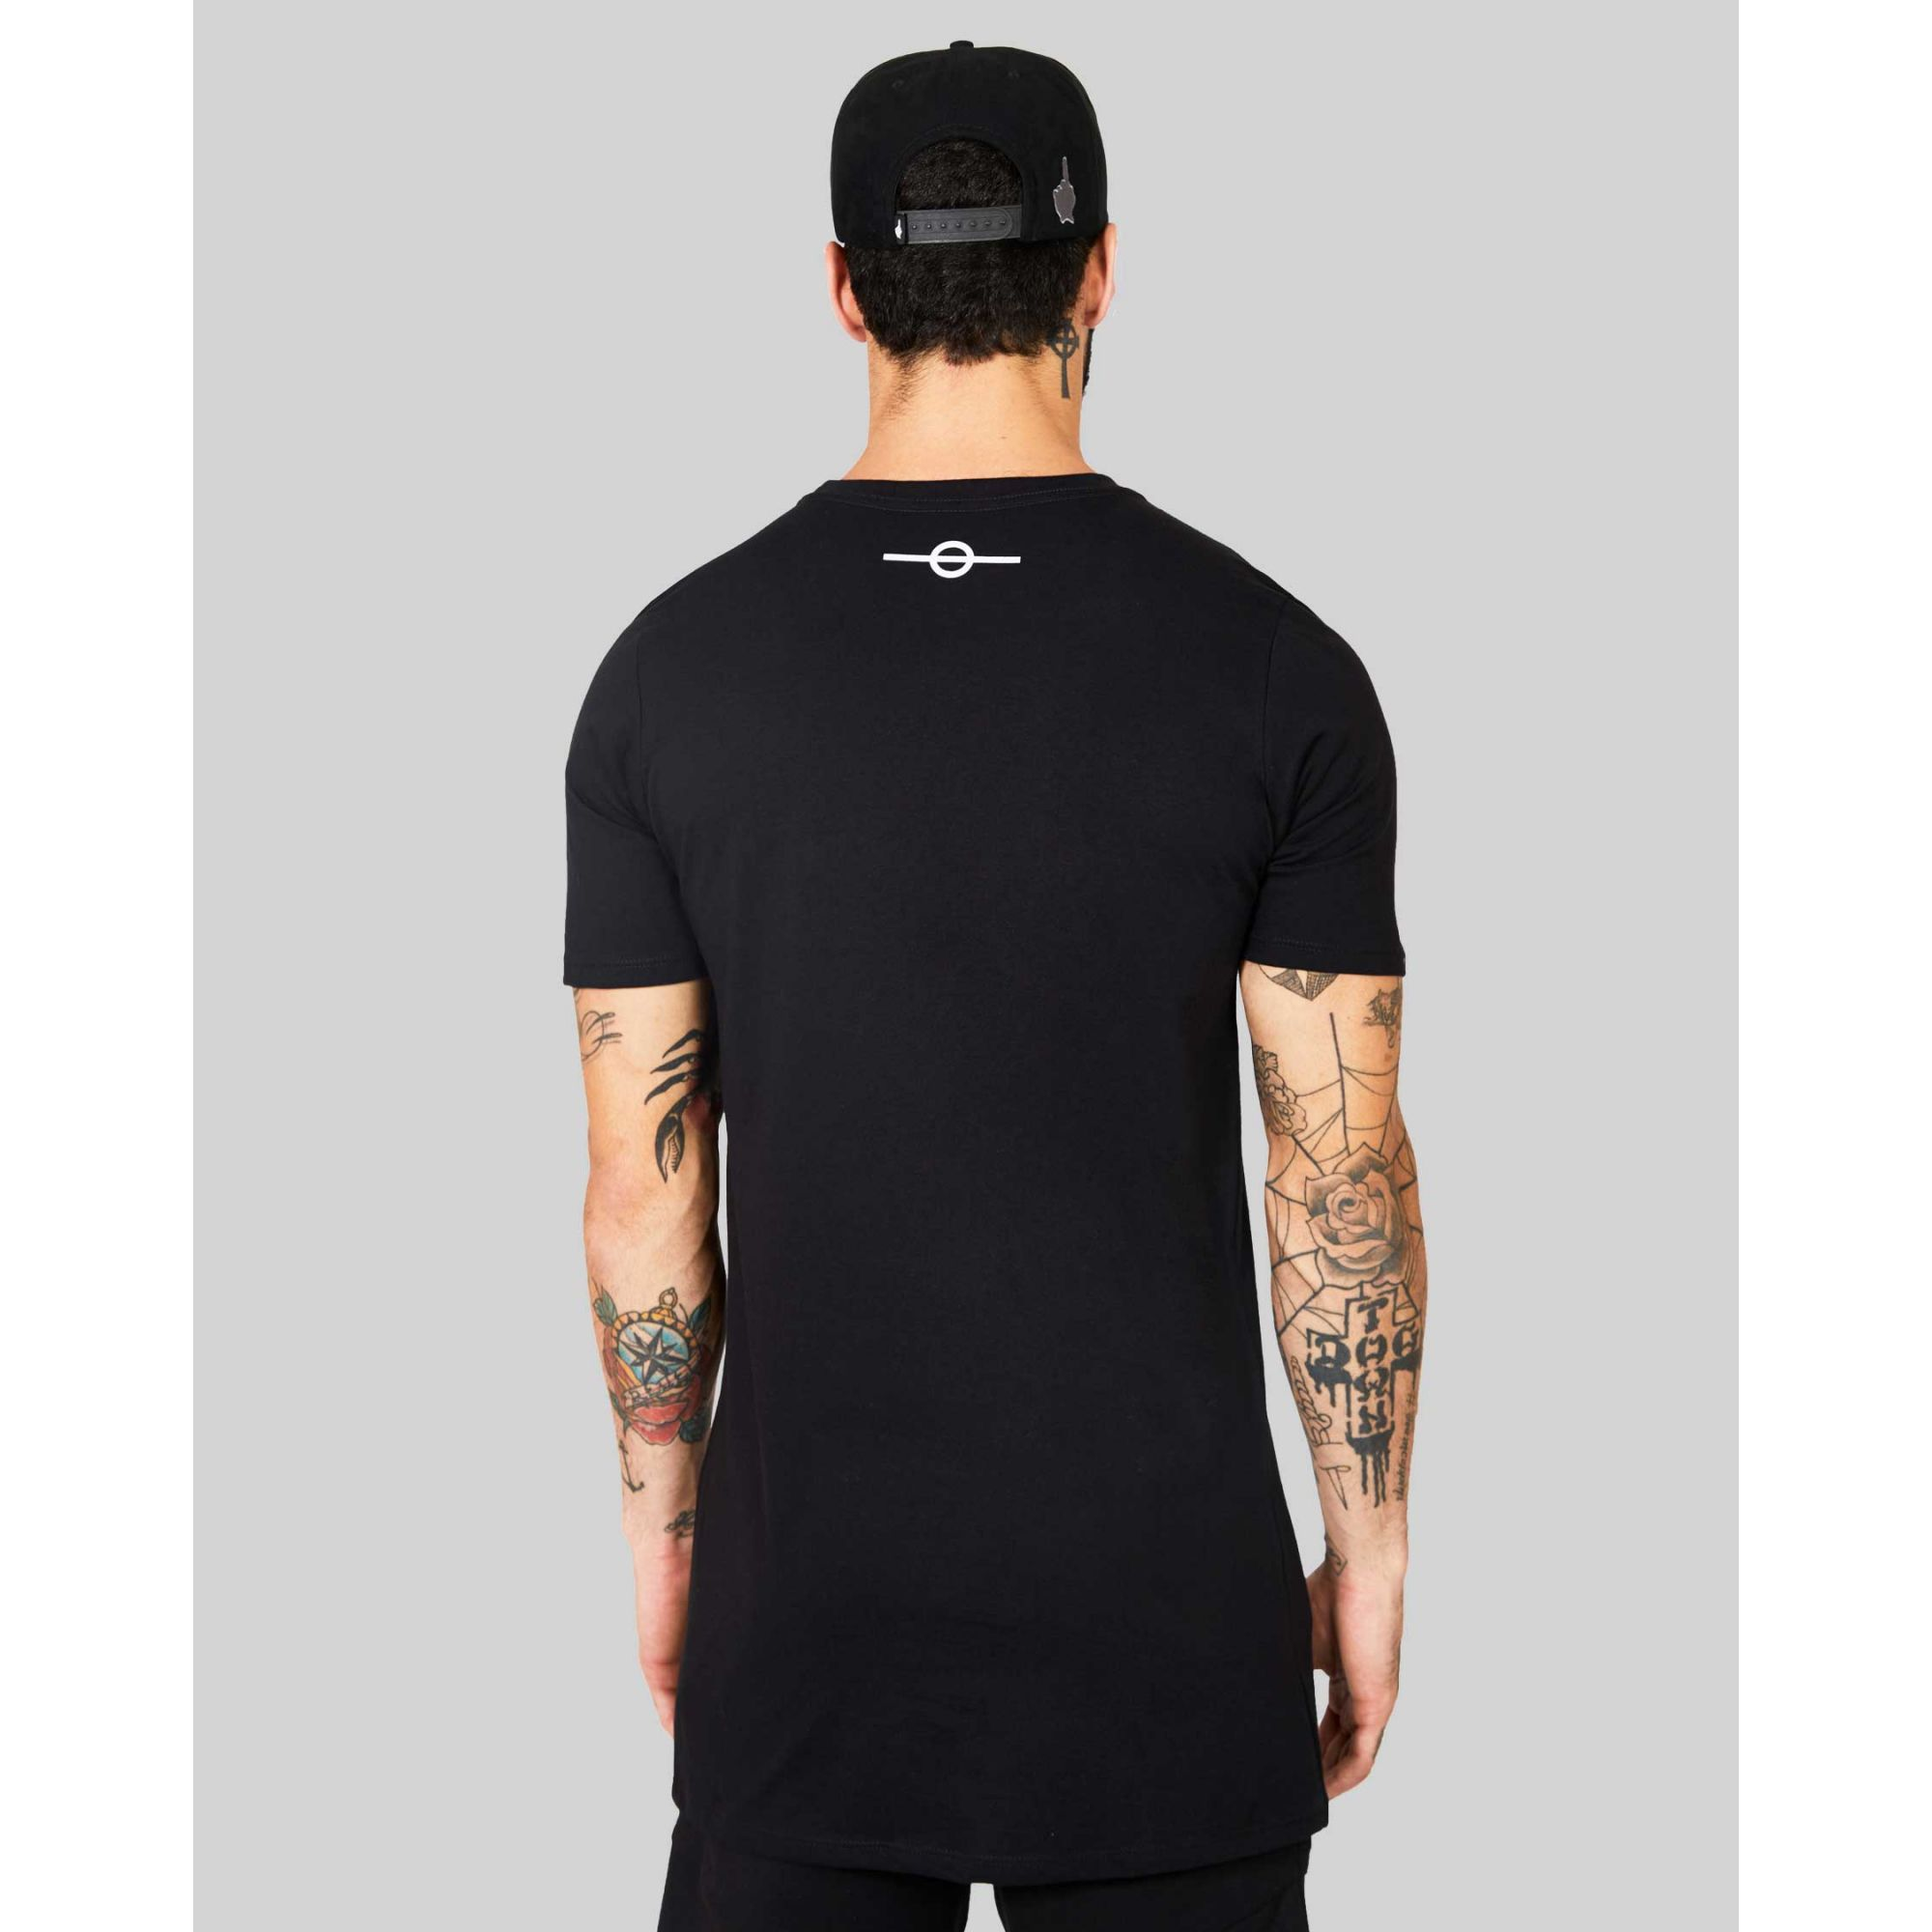 Camiseta Buh Camo Square Black